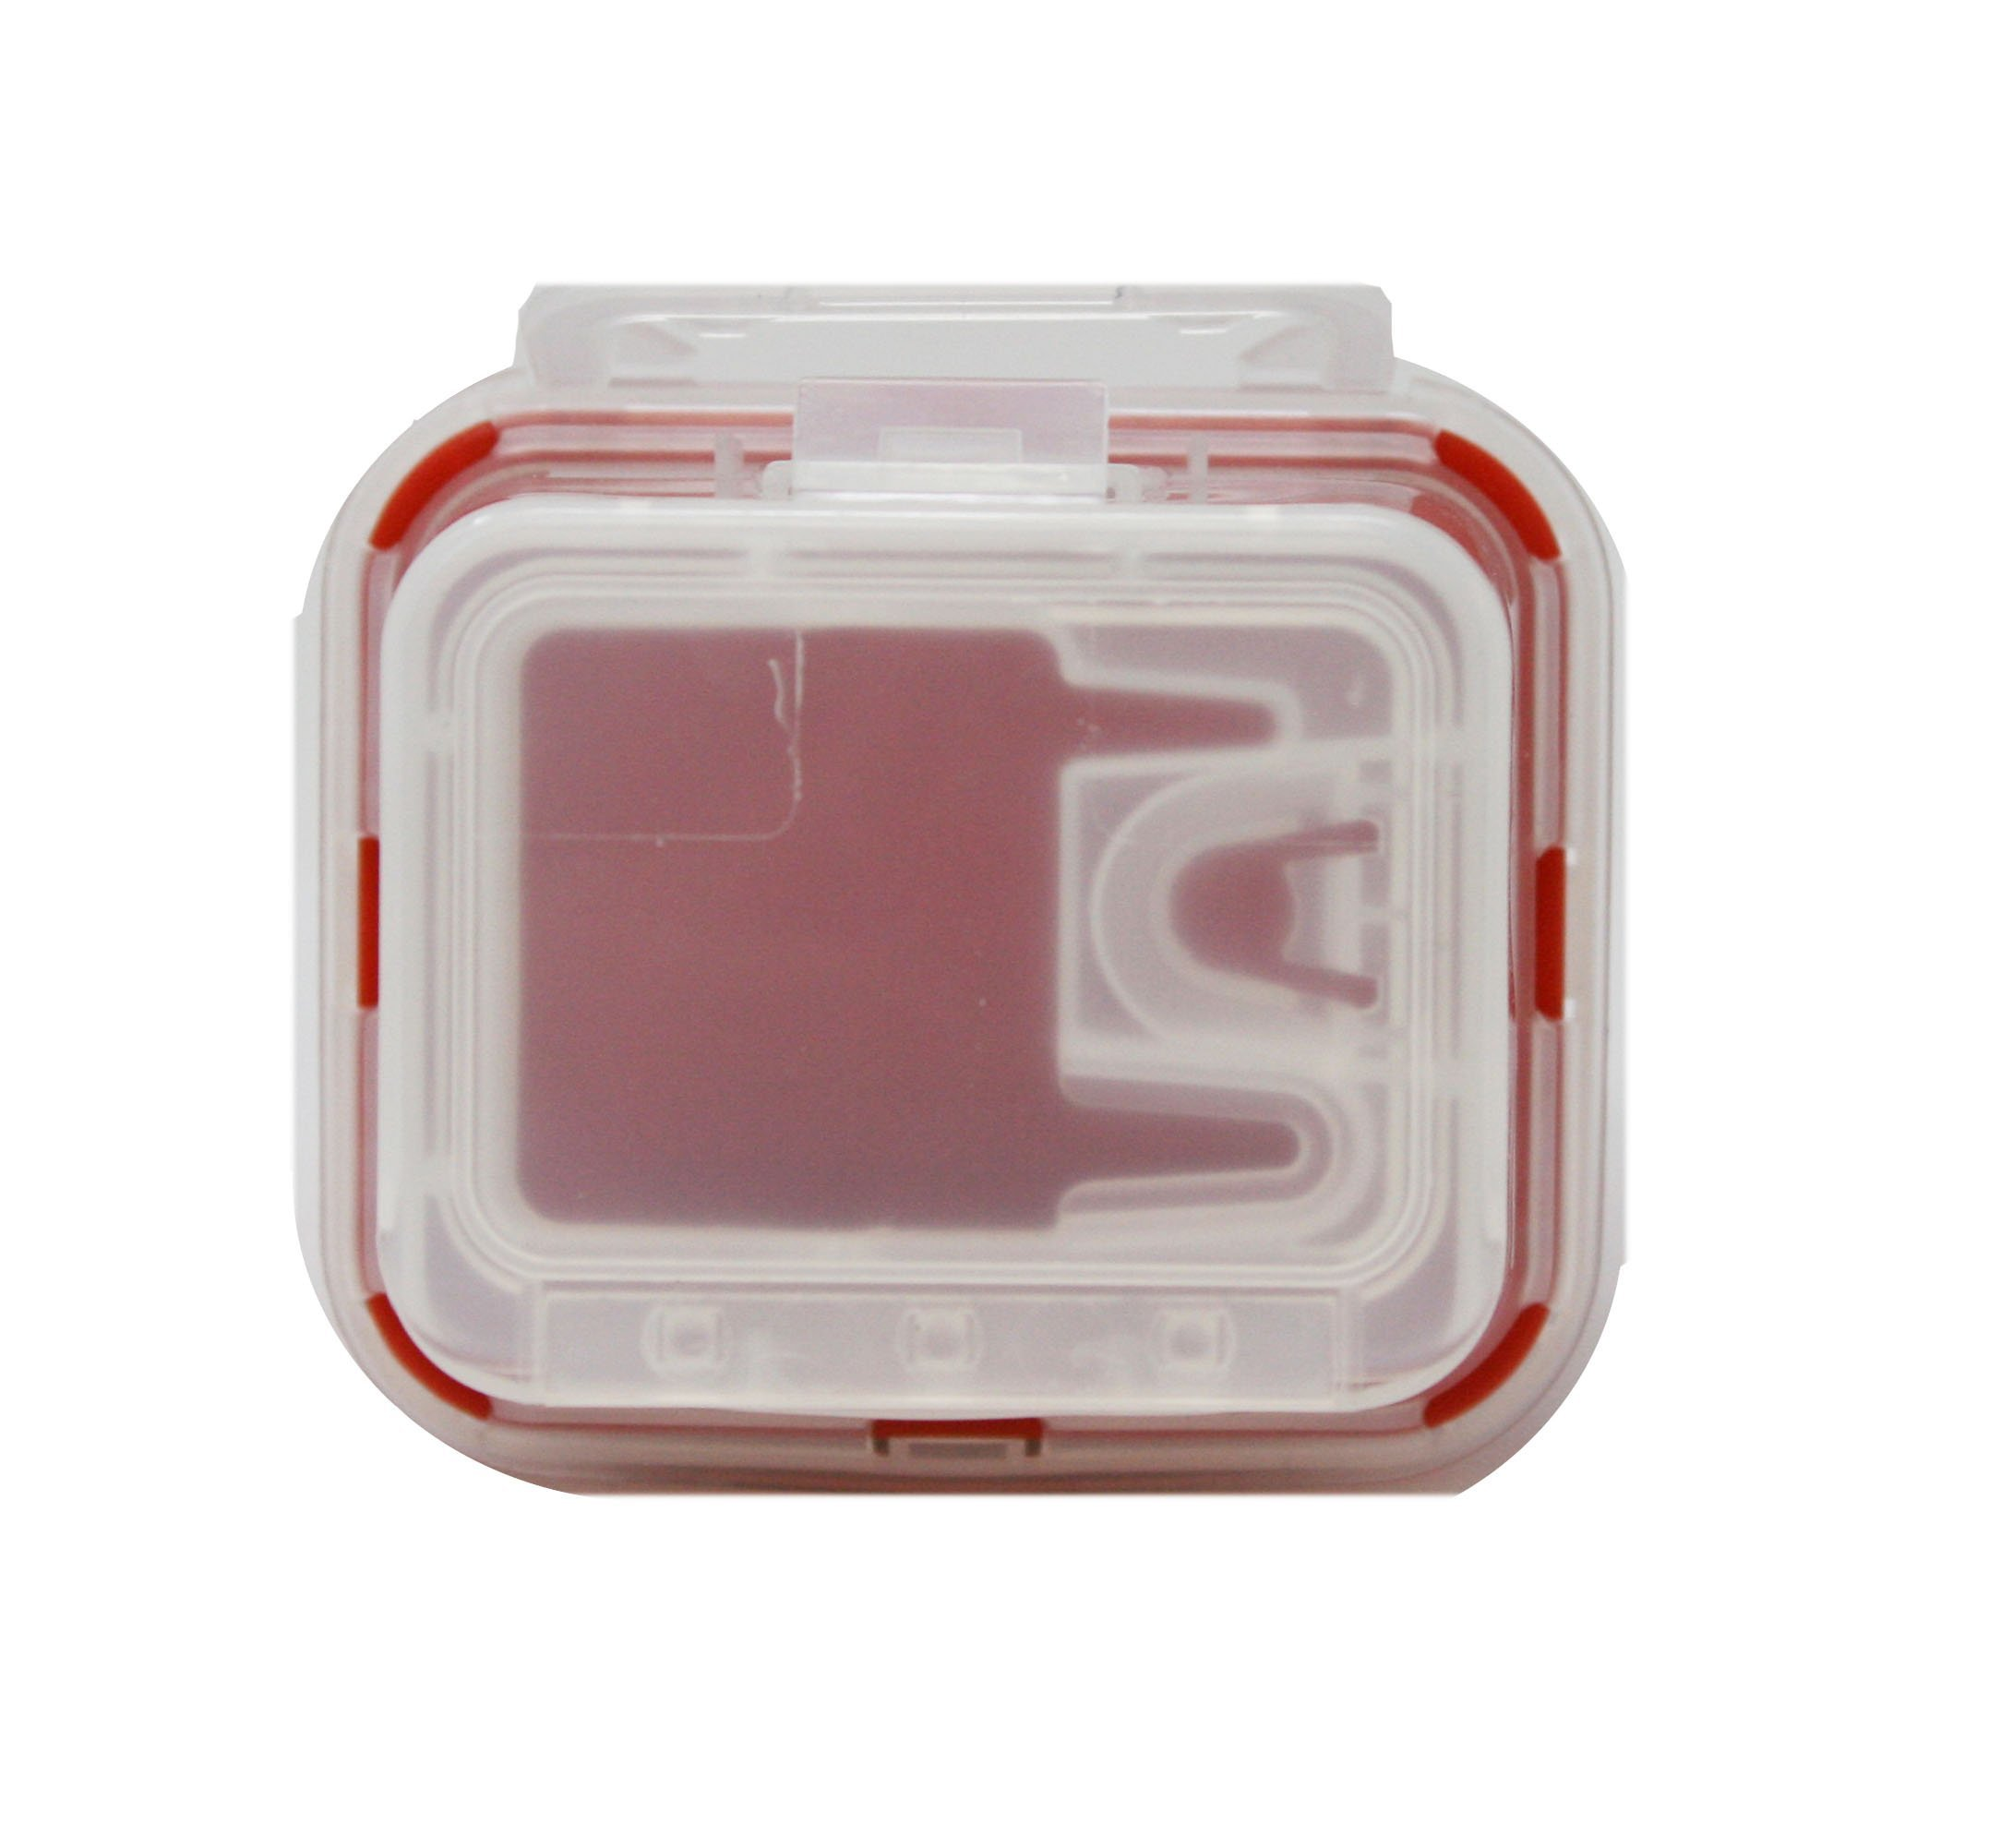 1.5 Quart Diabetic Sharps Container for Personal use by Oakridge Products, with Safety lid